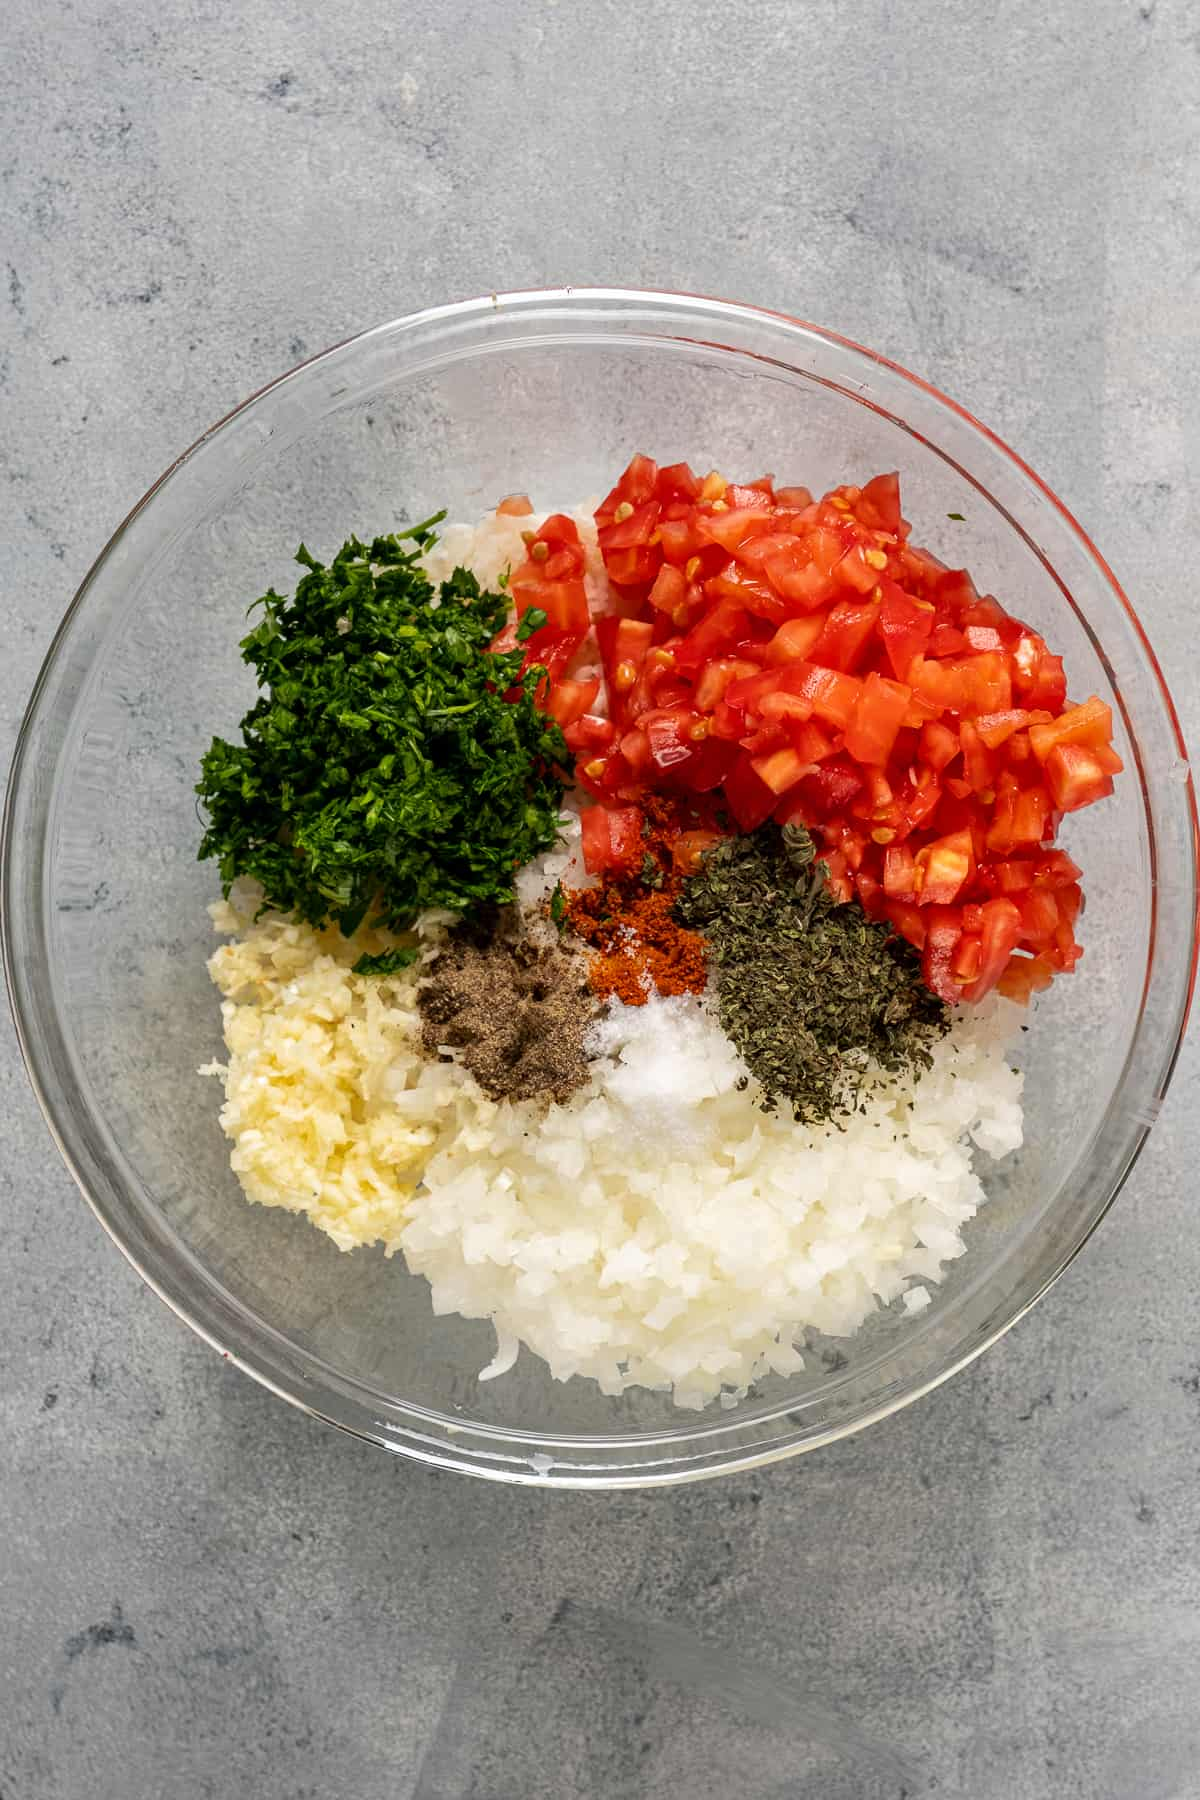 Rice, chopped garlic, onion, tomatoes, parsley and spices in a glass mixing bowl.